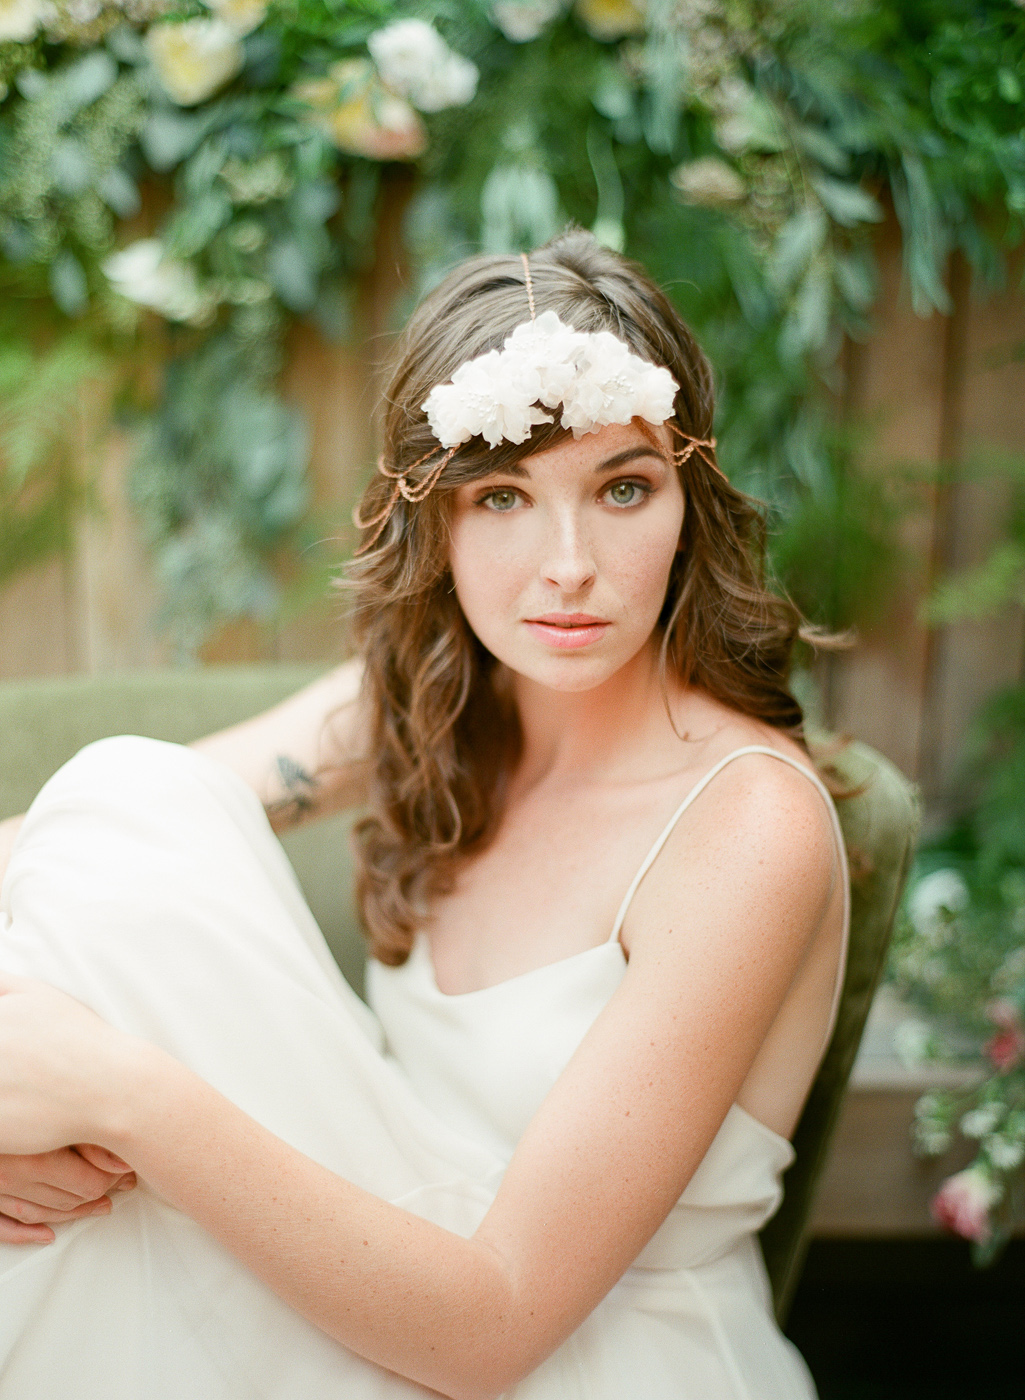 bohemian hair chain with silk flowers by hushed commotion